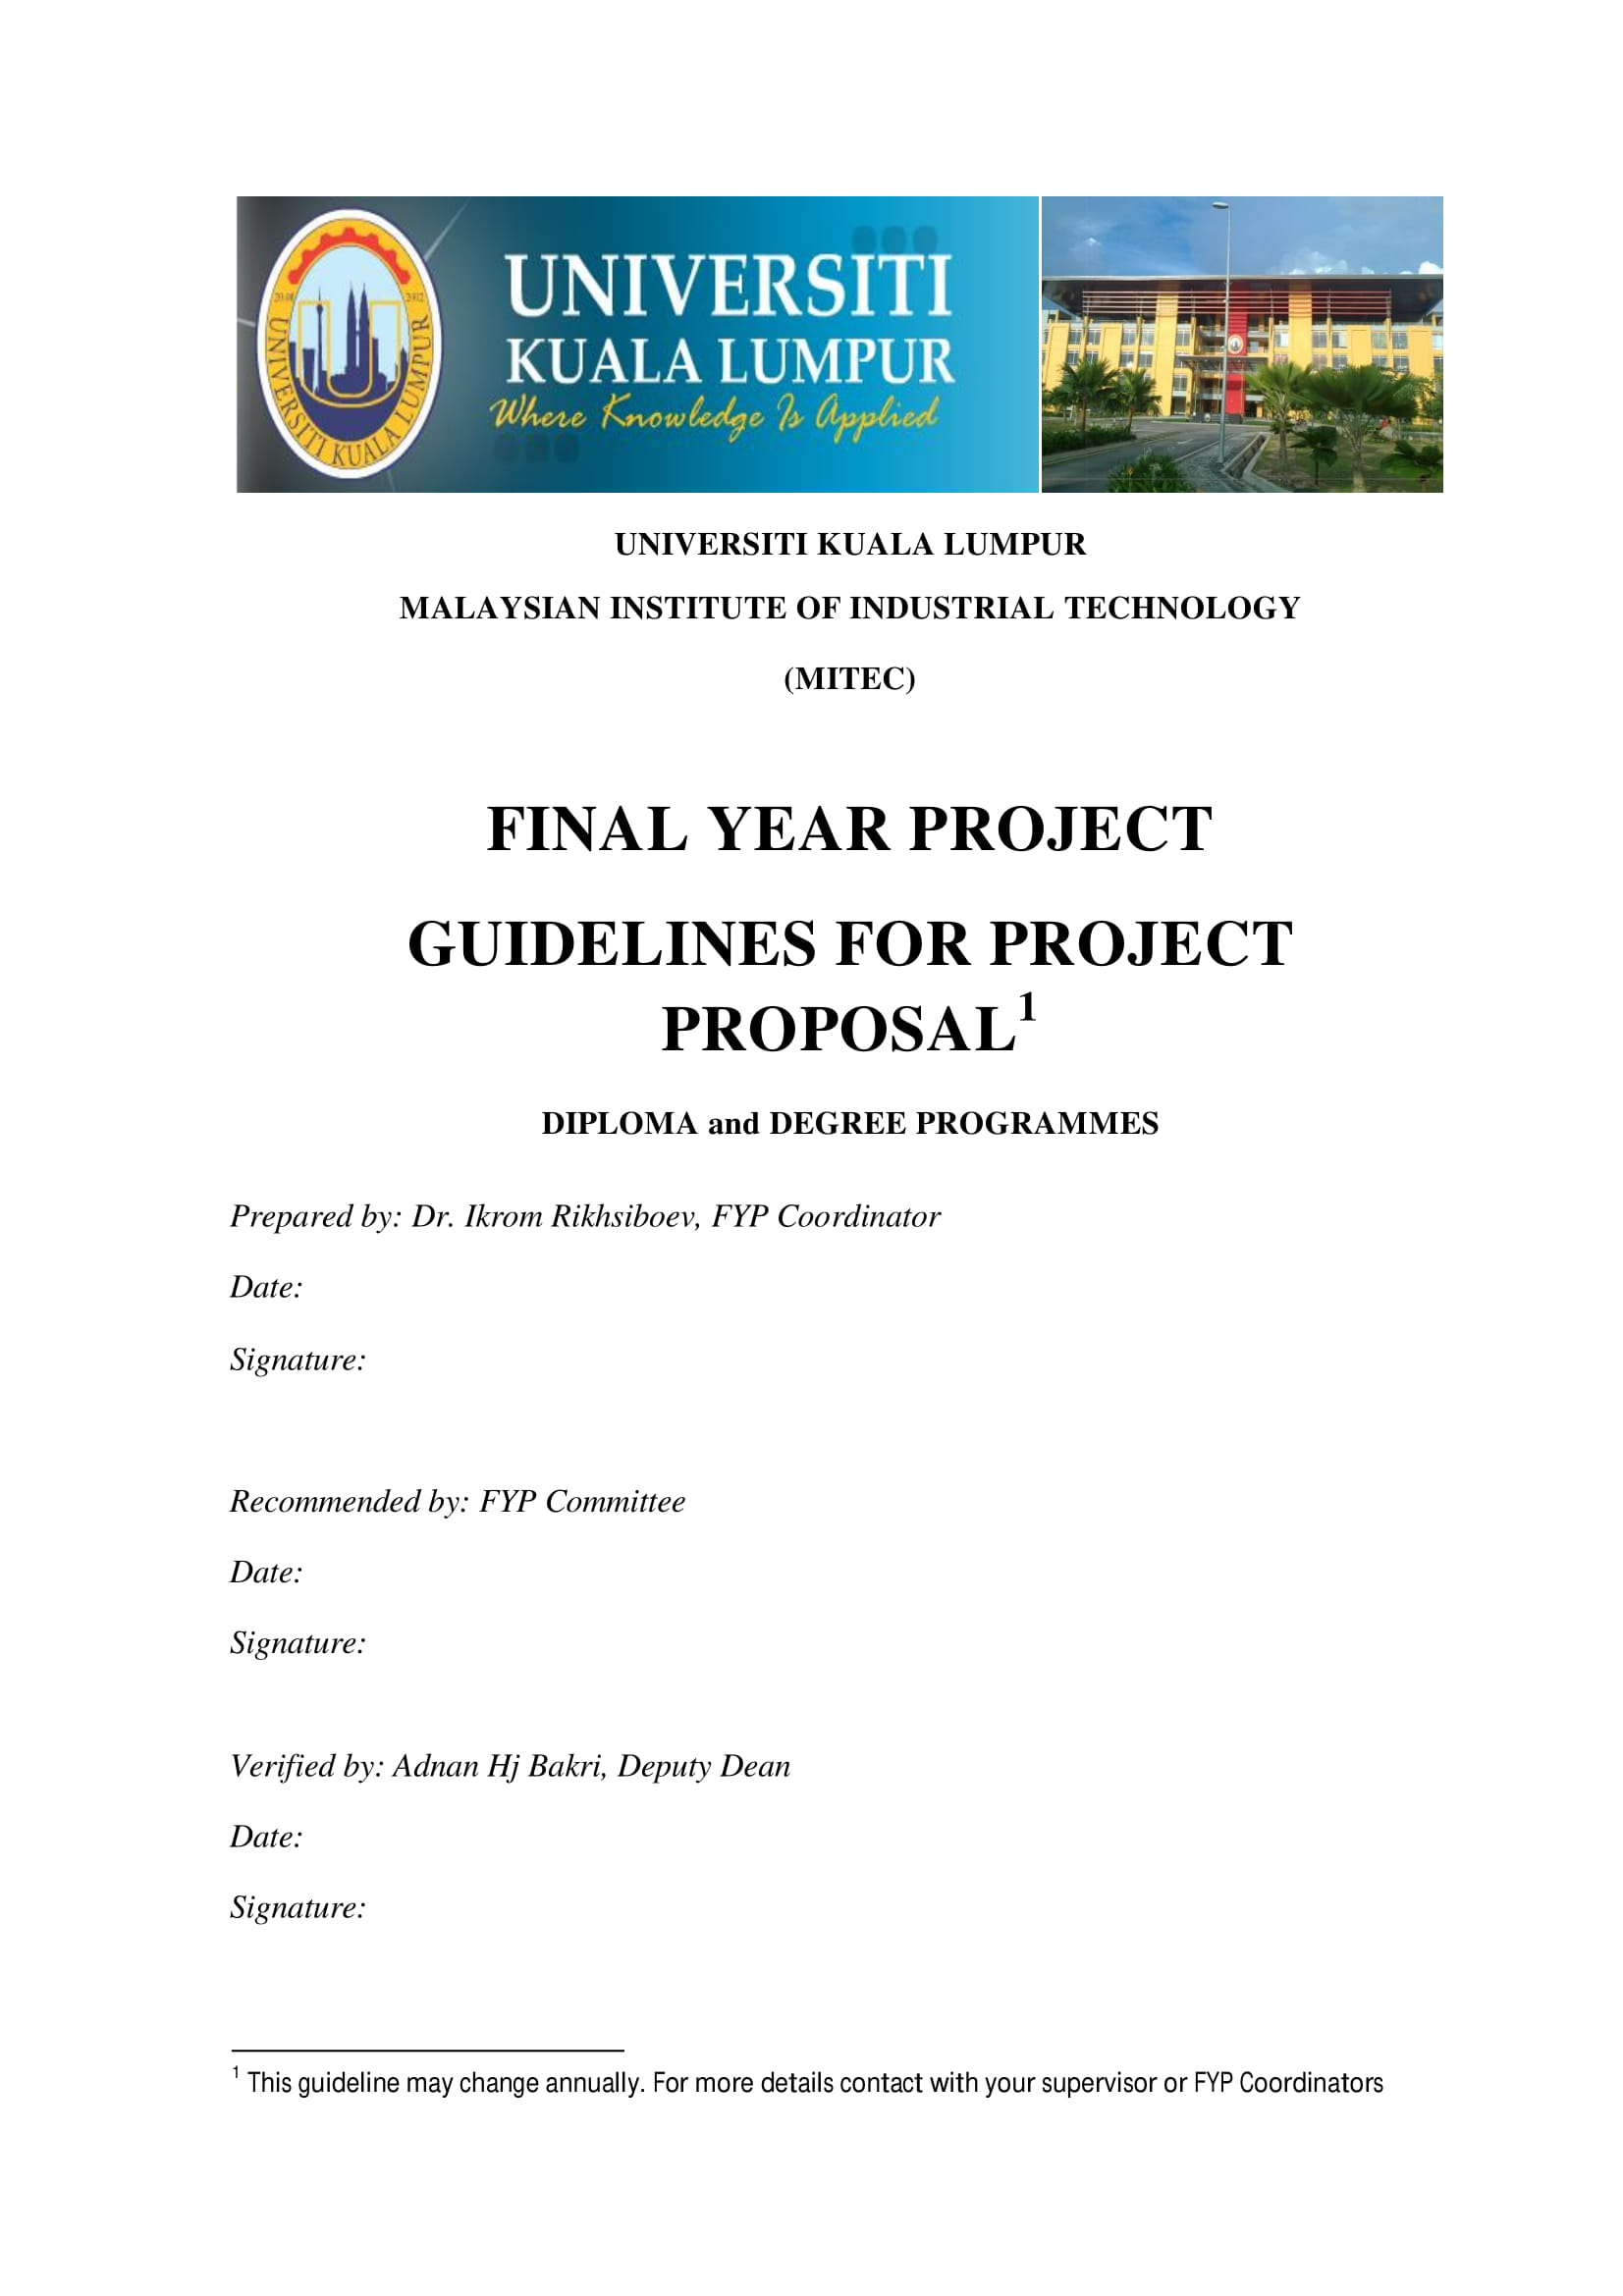 final year project proposal guidelines example 1